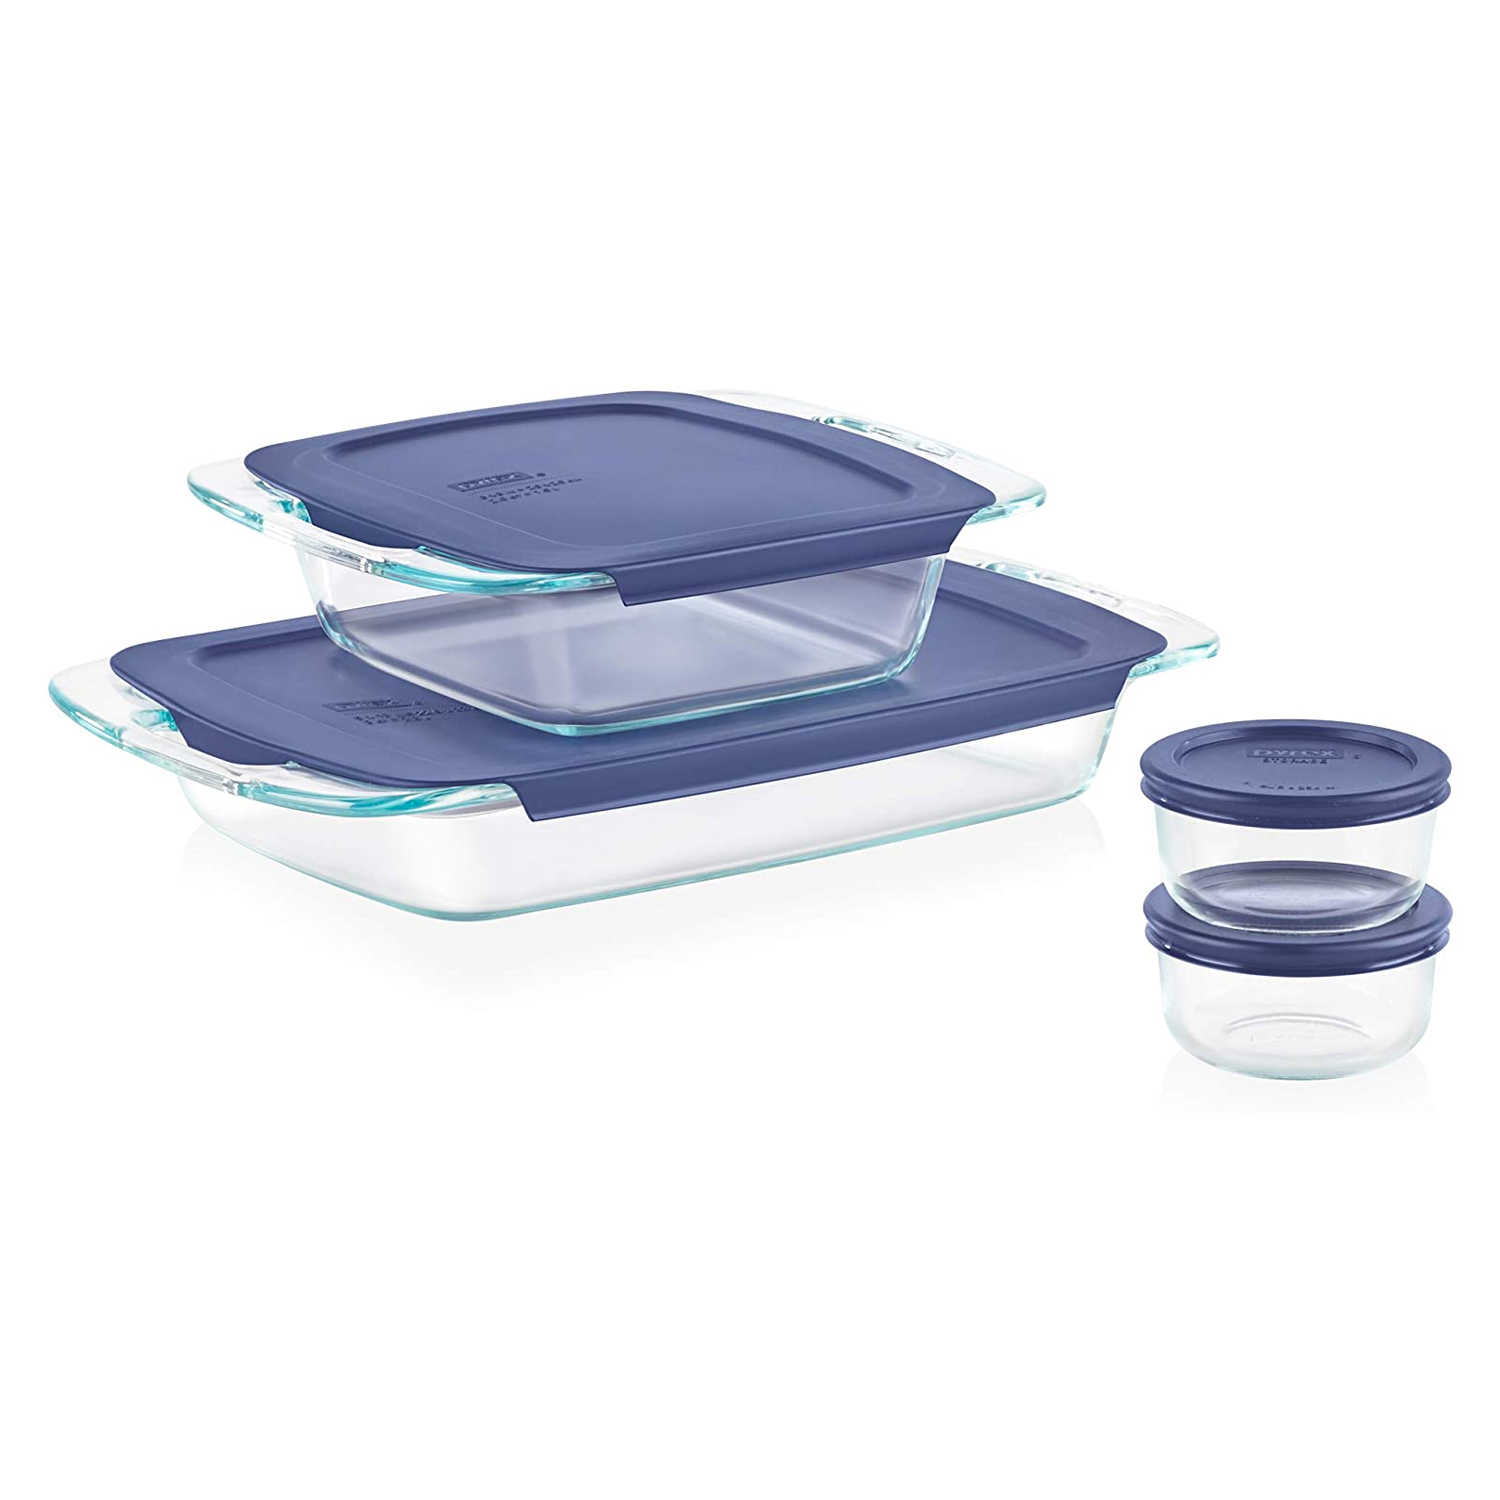 Pyrex dish from Amazon